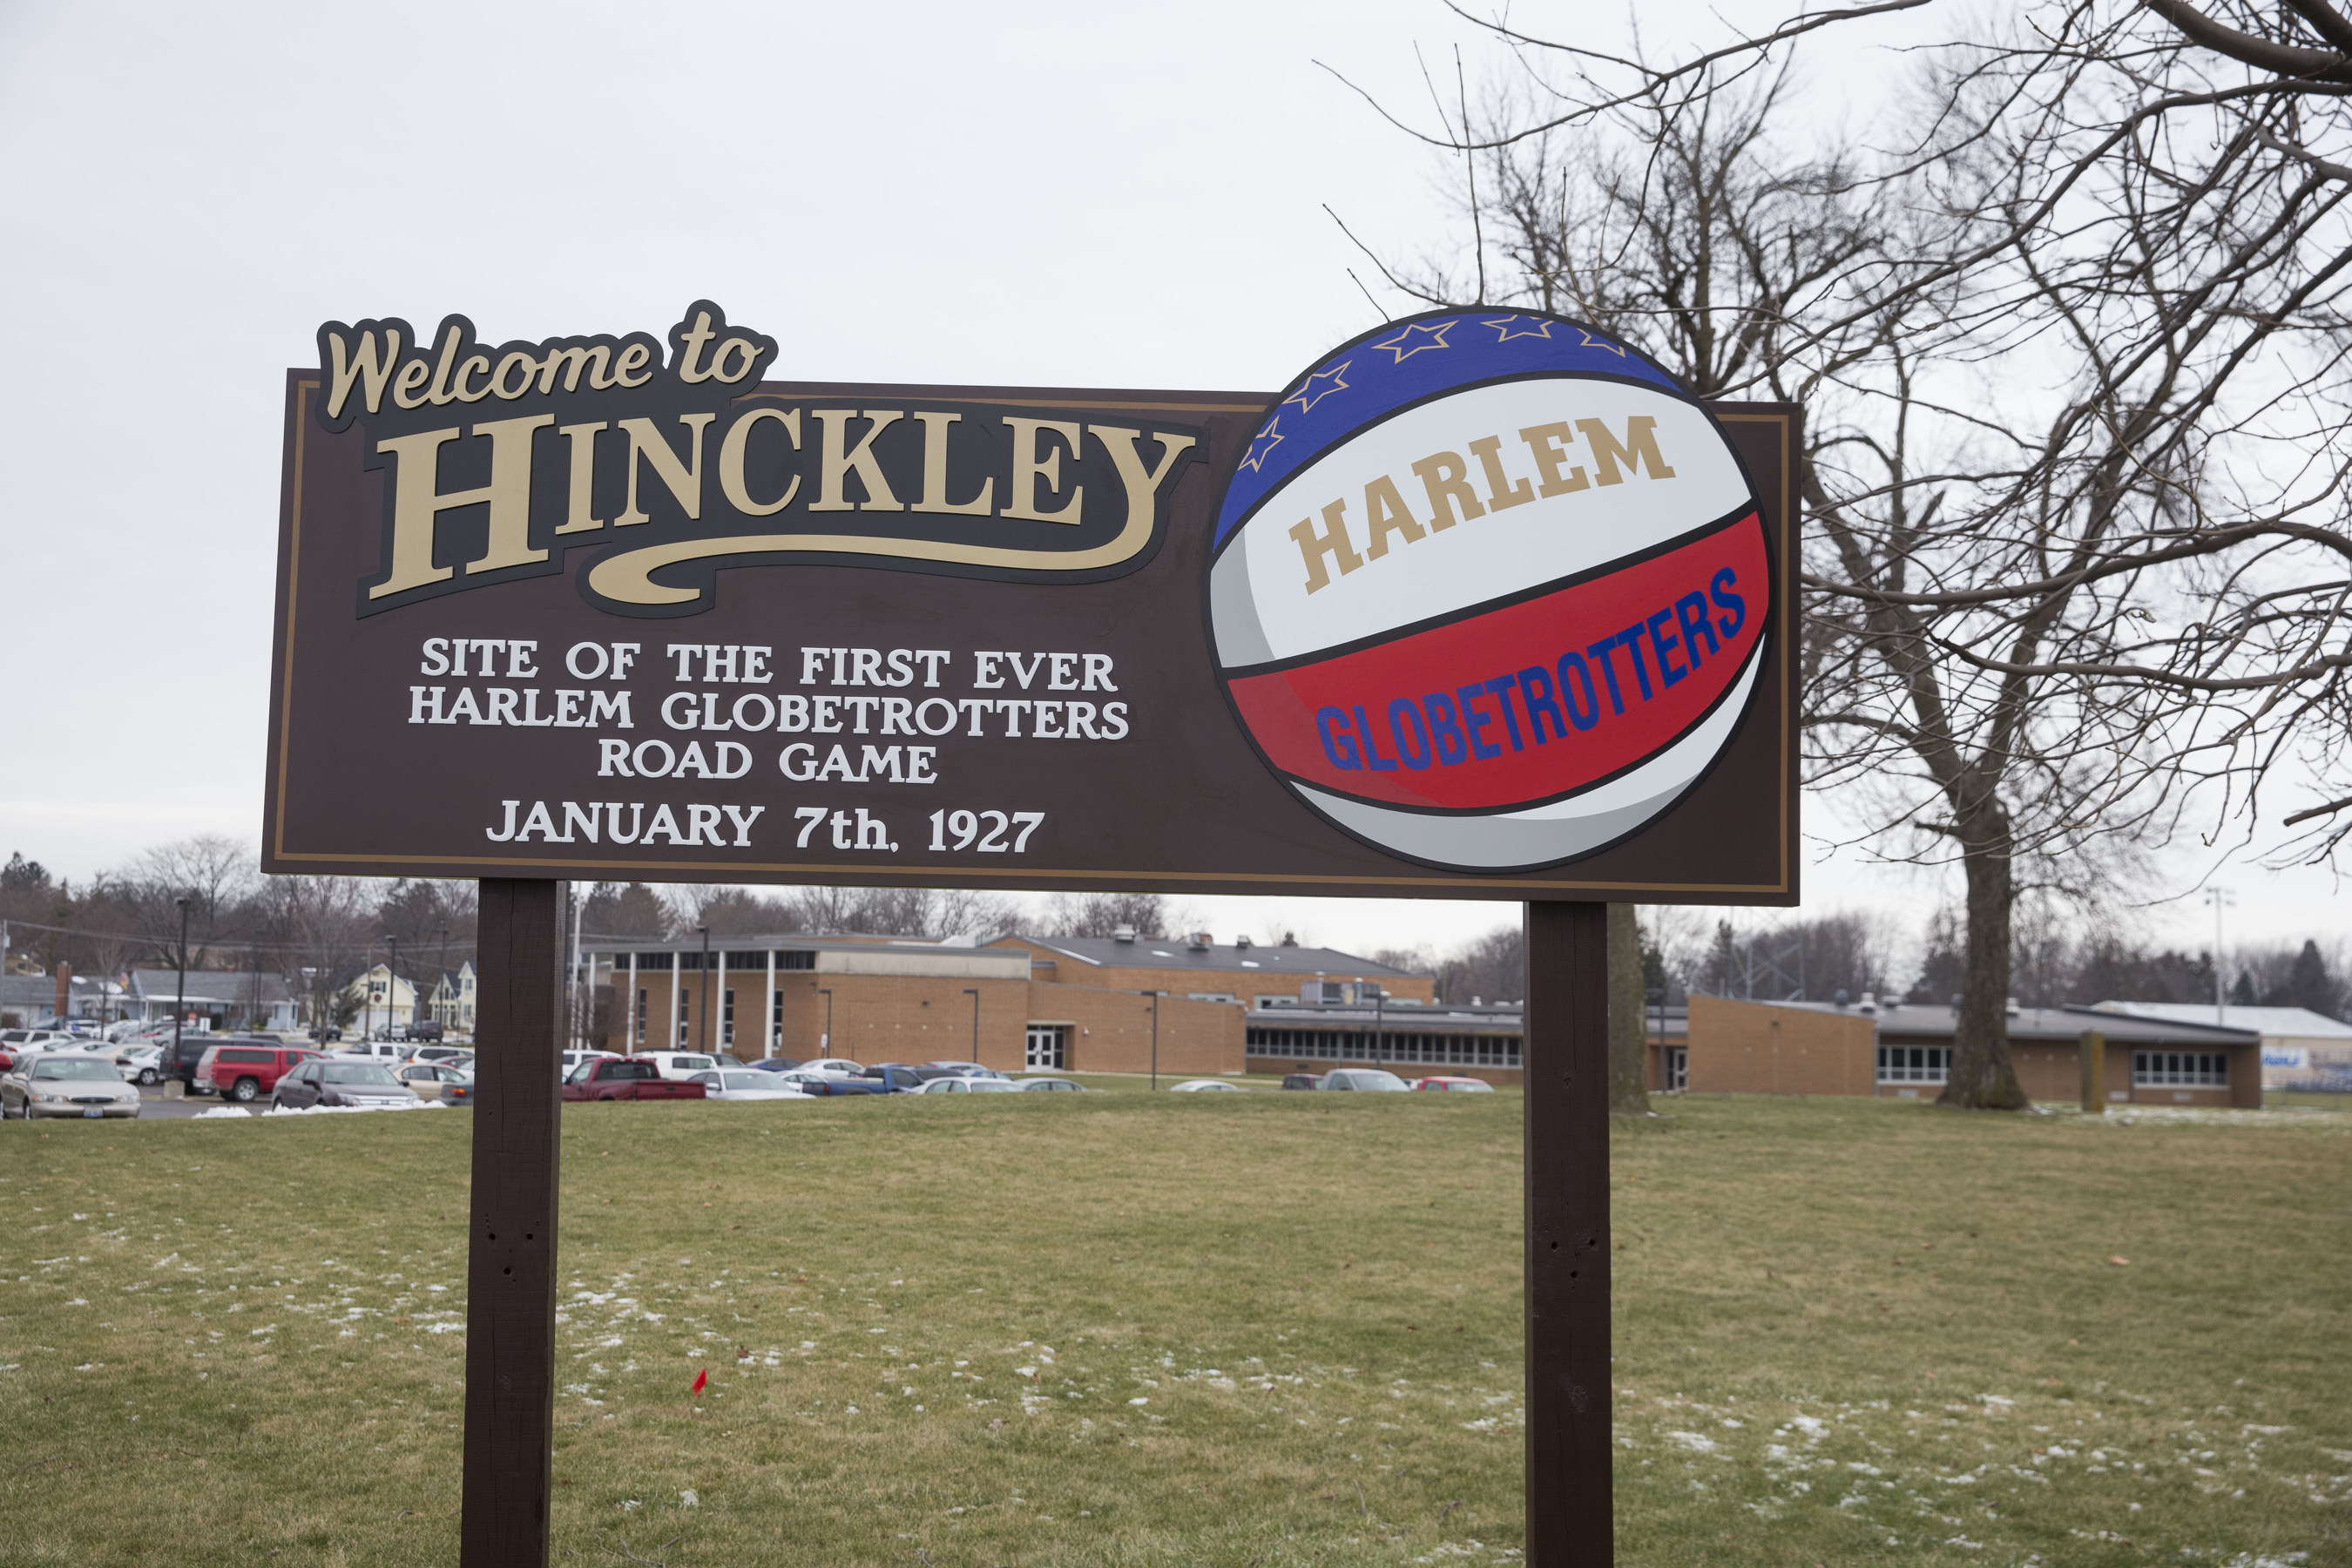 In celebration of their 90th year of entertaining families around the world, the iconic Harlem Globetrotters returned to Hinckley, Illinois, today - the anniversary date of the team's first-ever road game in 1927 - and erected a new sign to denote the historic site during a special ceremony this afternoon.